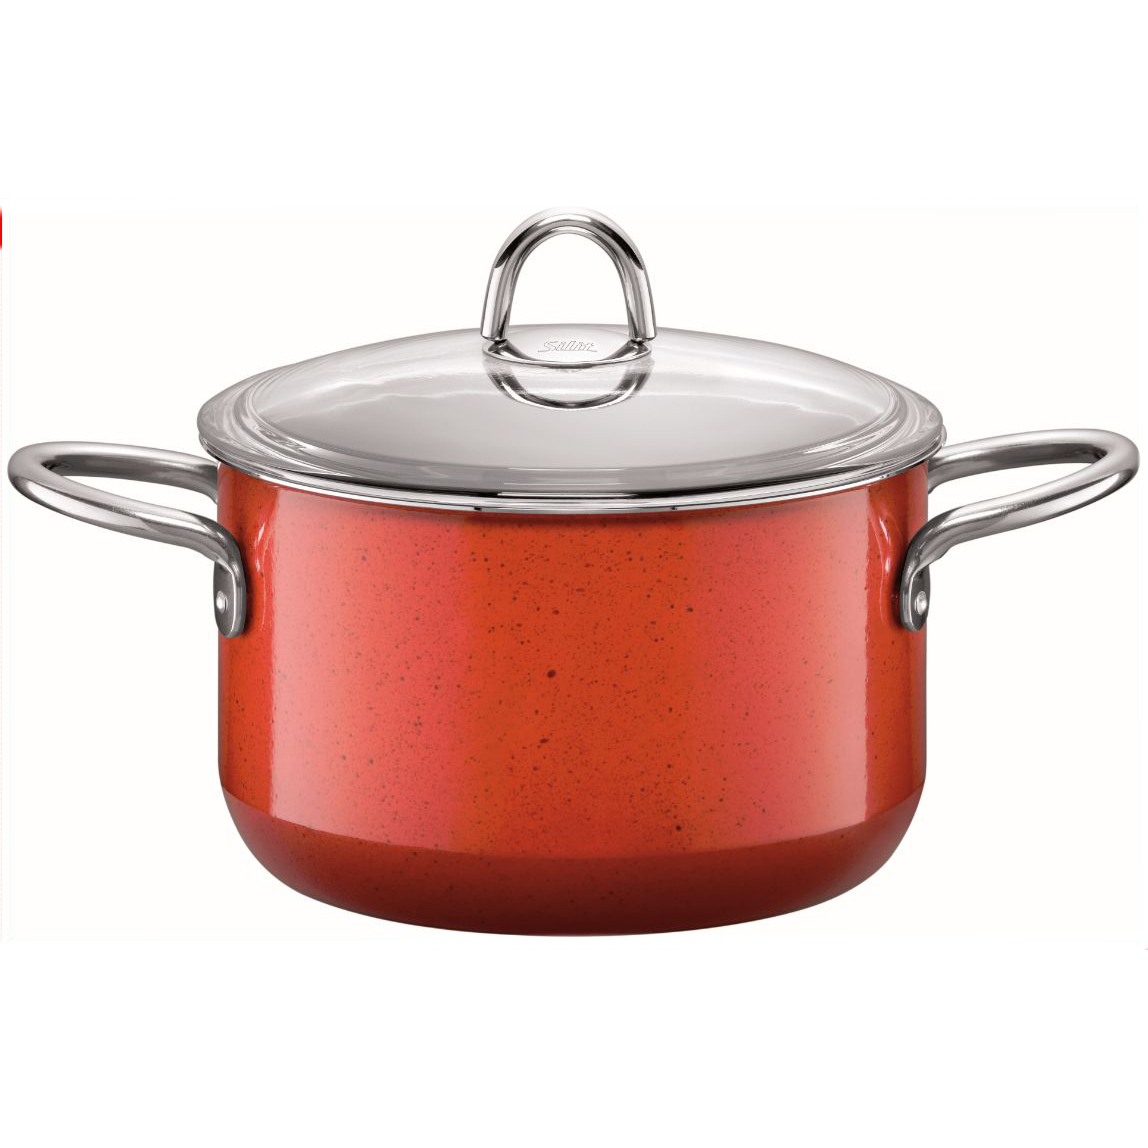 WMF Silit Passion 4 Energy Red Coated Steel High Casserole Pot with Lid